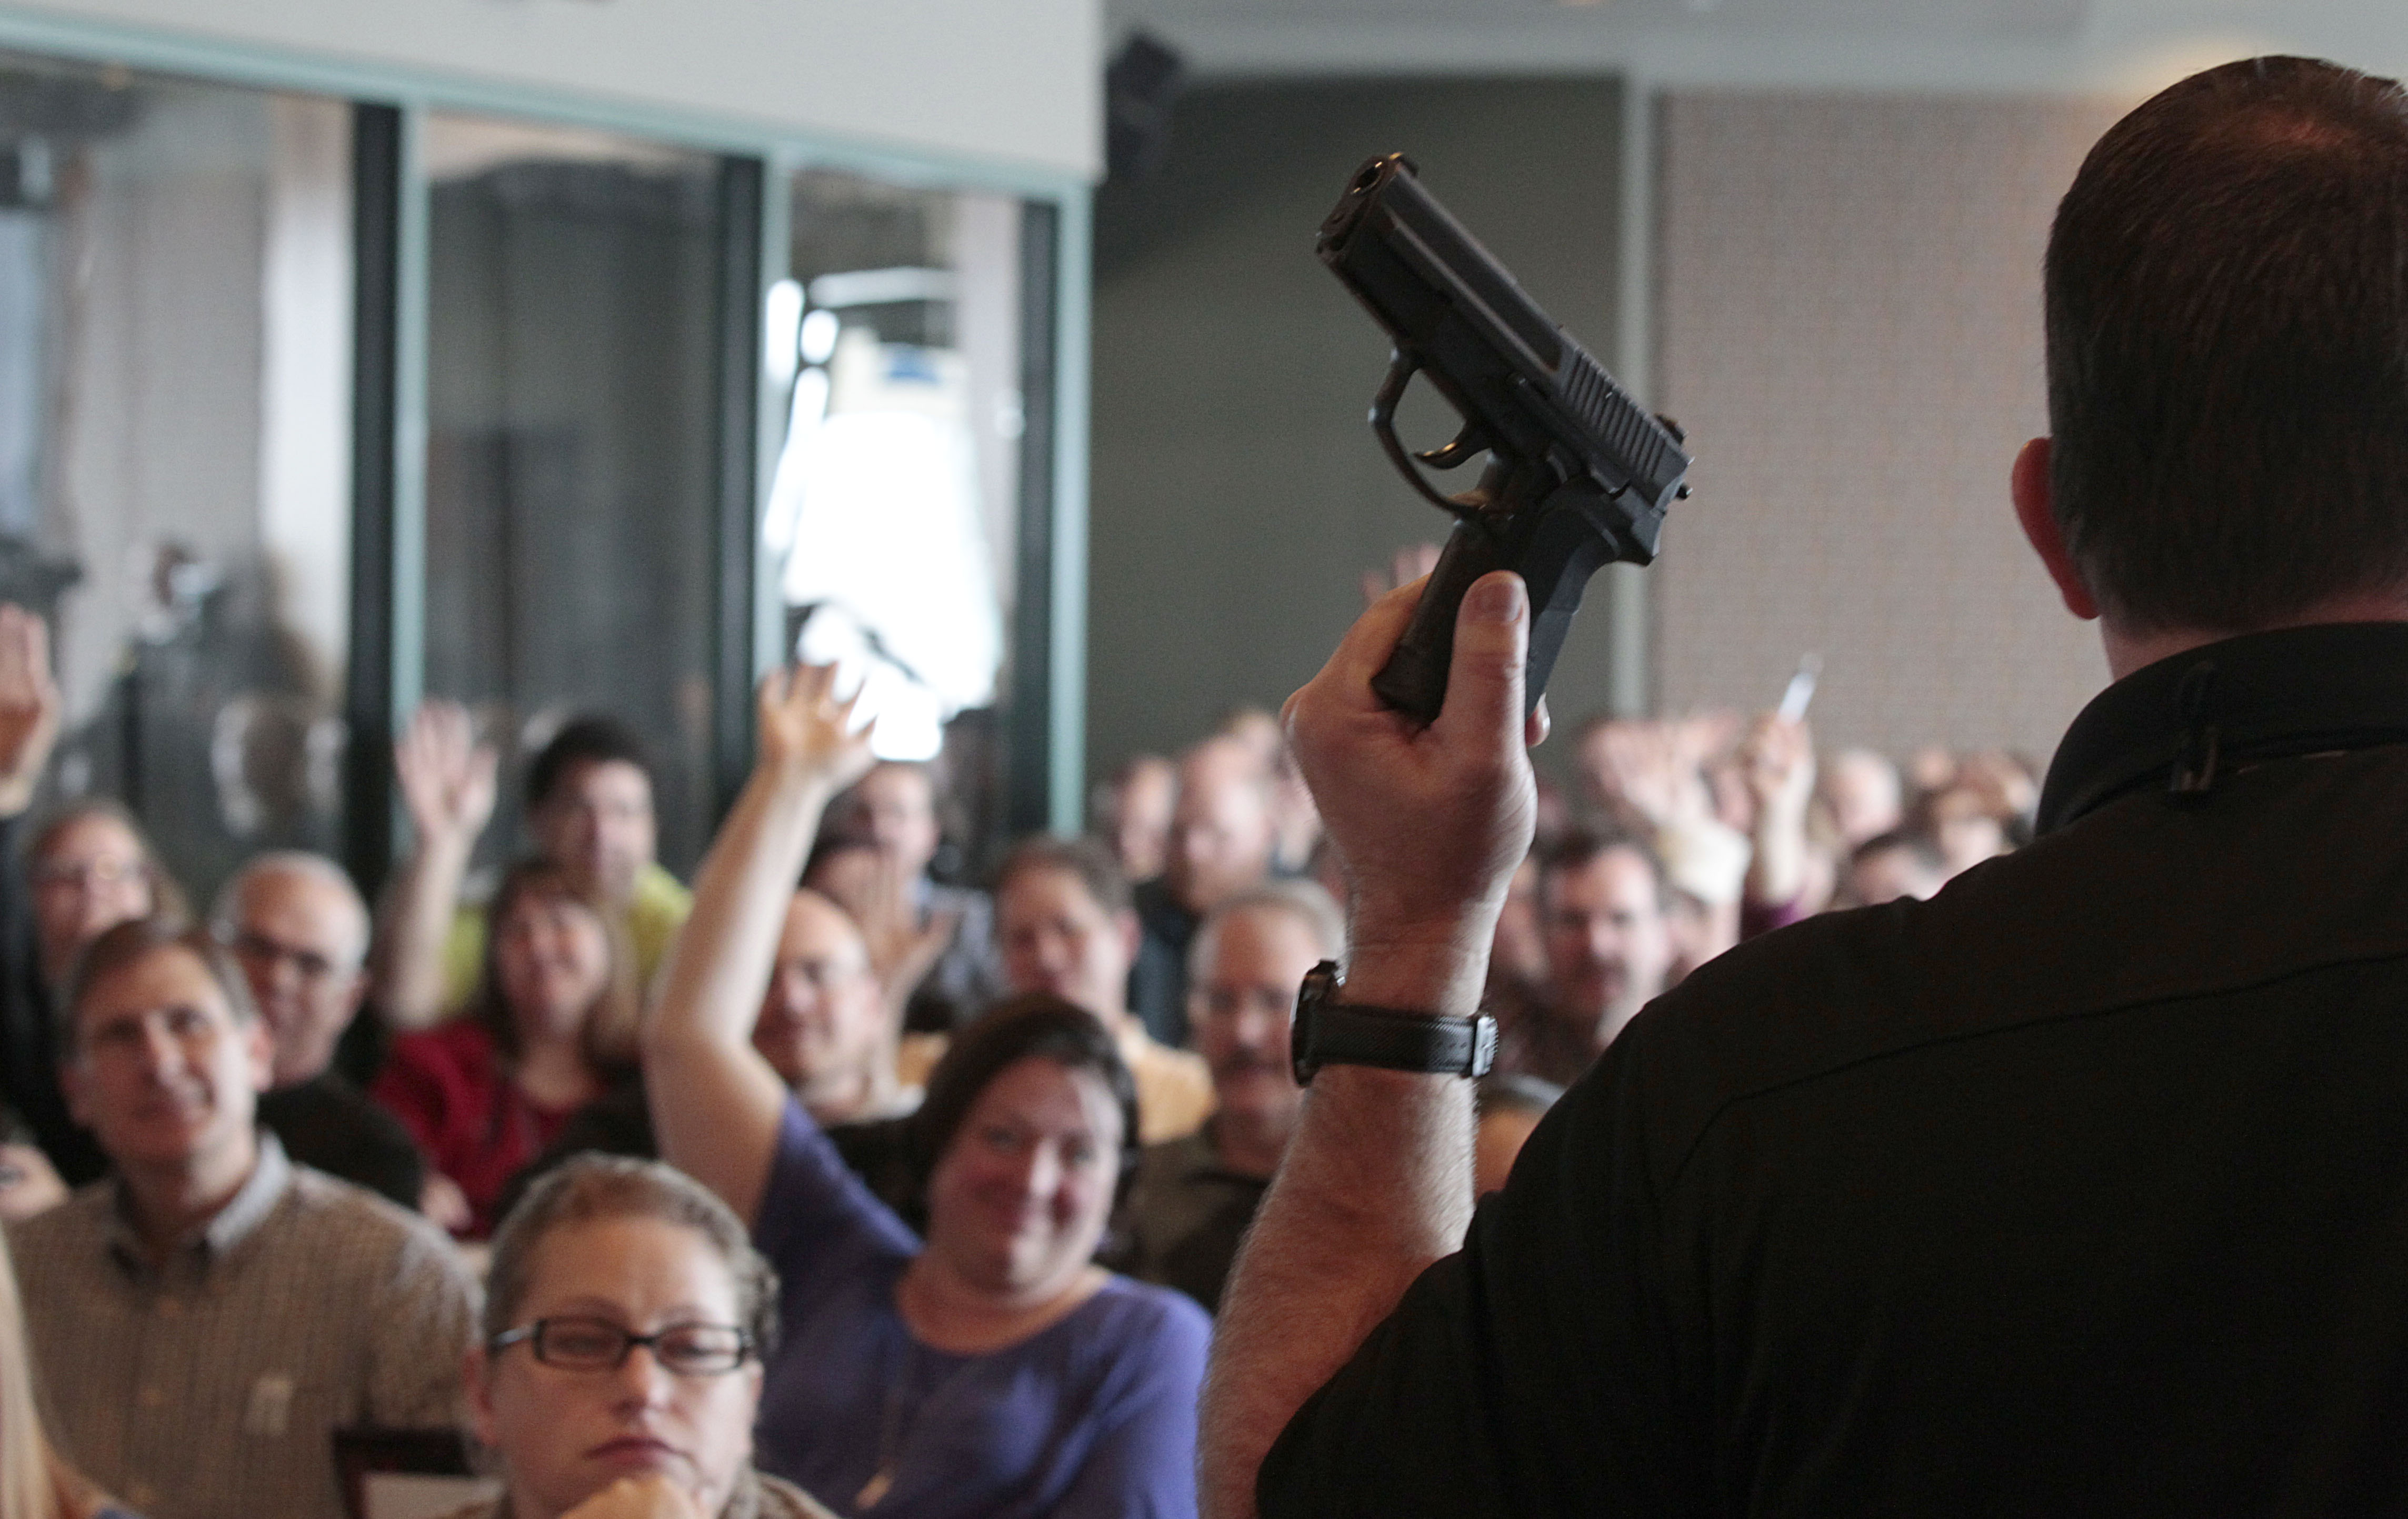 Firearm instructor Clark Aposhian holds a handgun up as he teaches a concealed-weapons training class to 200 Utah teachers ... (Photo by George Frey/Getty Images)